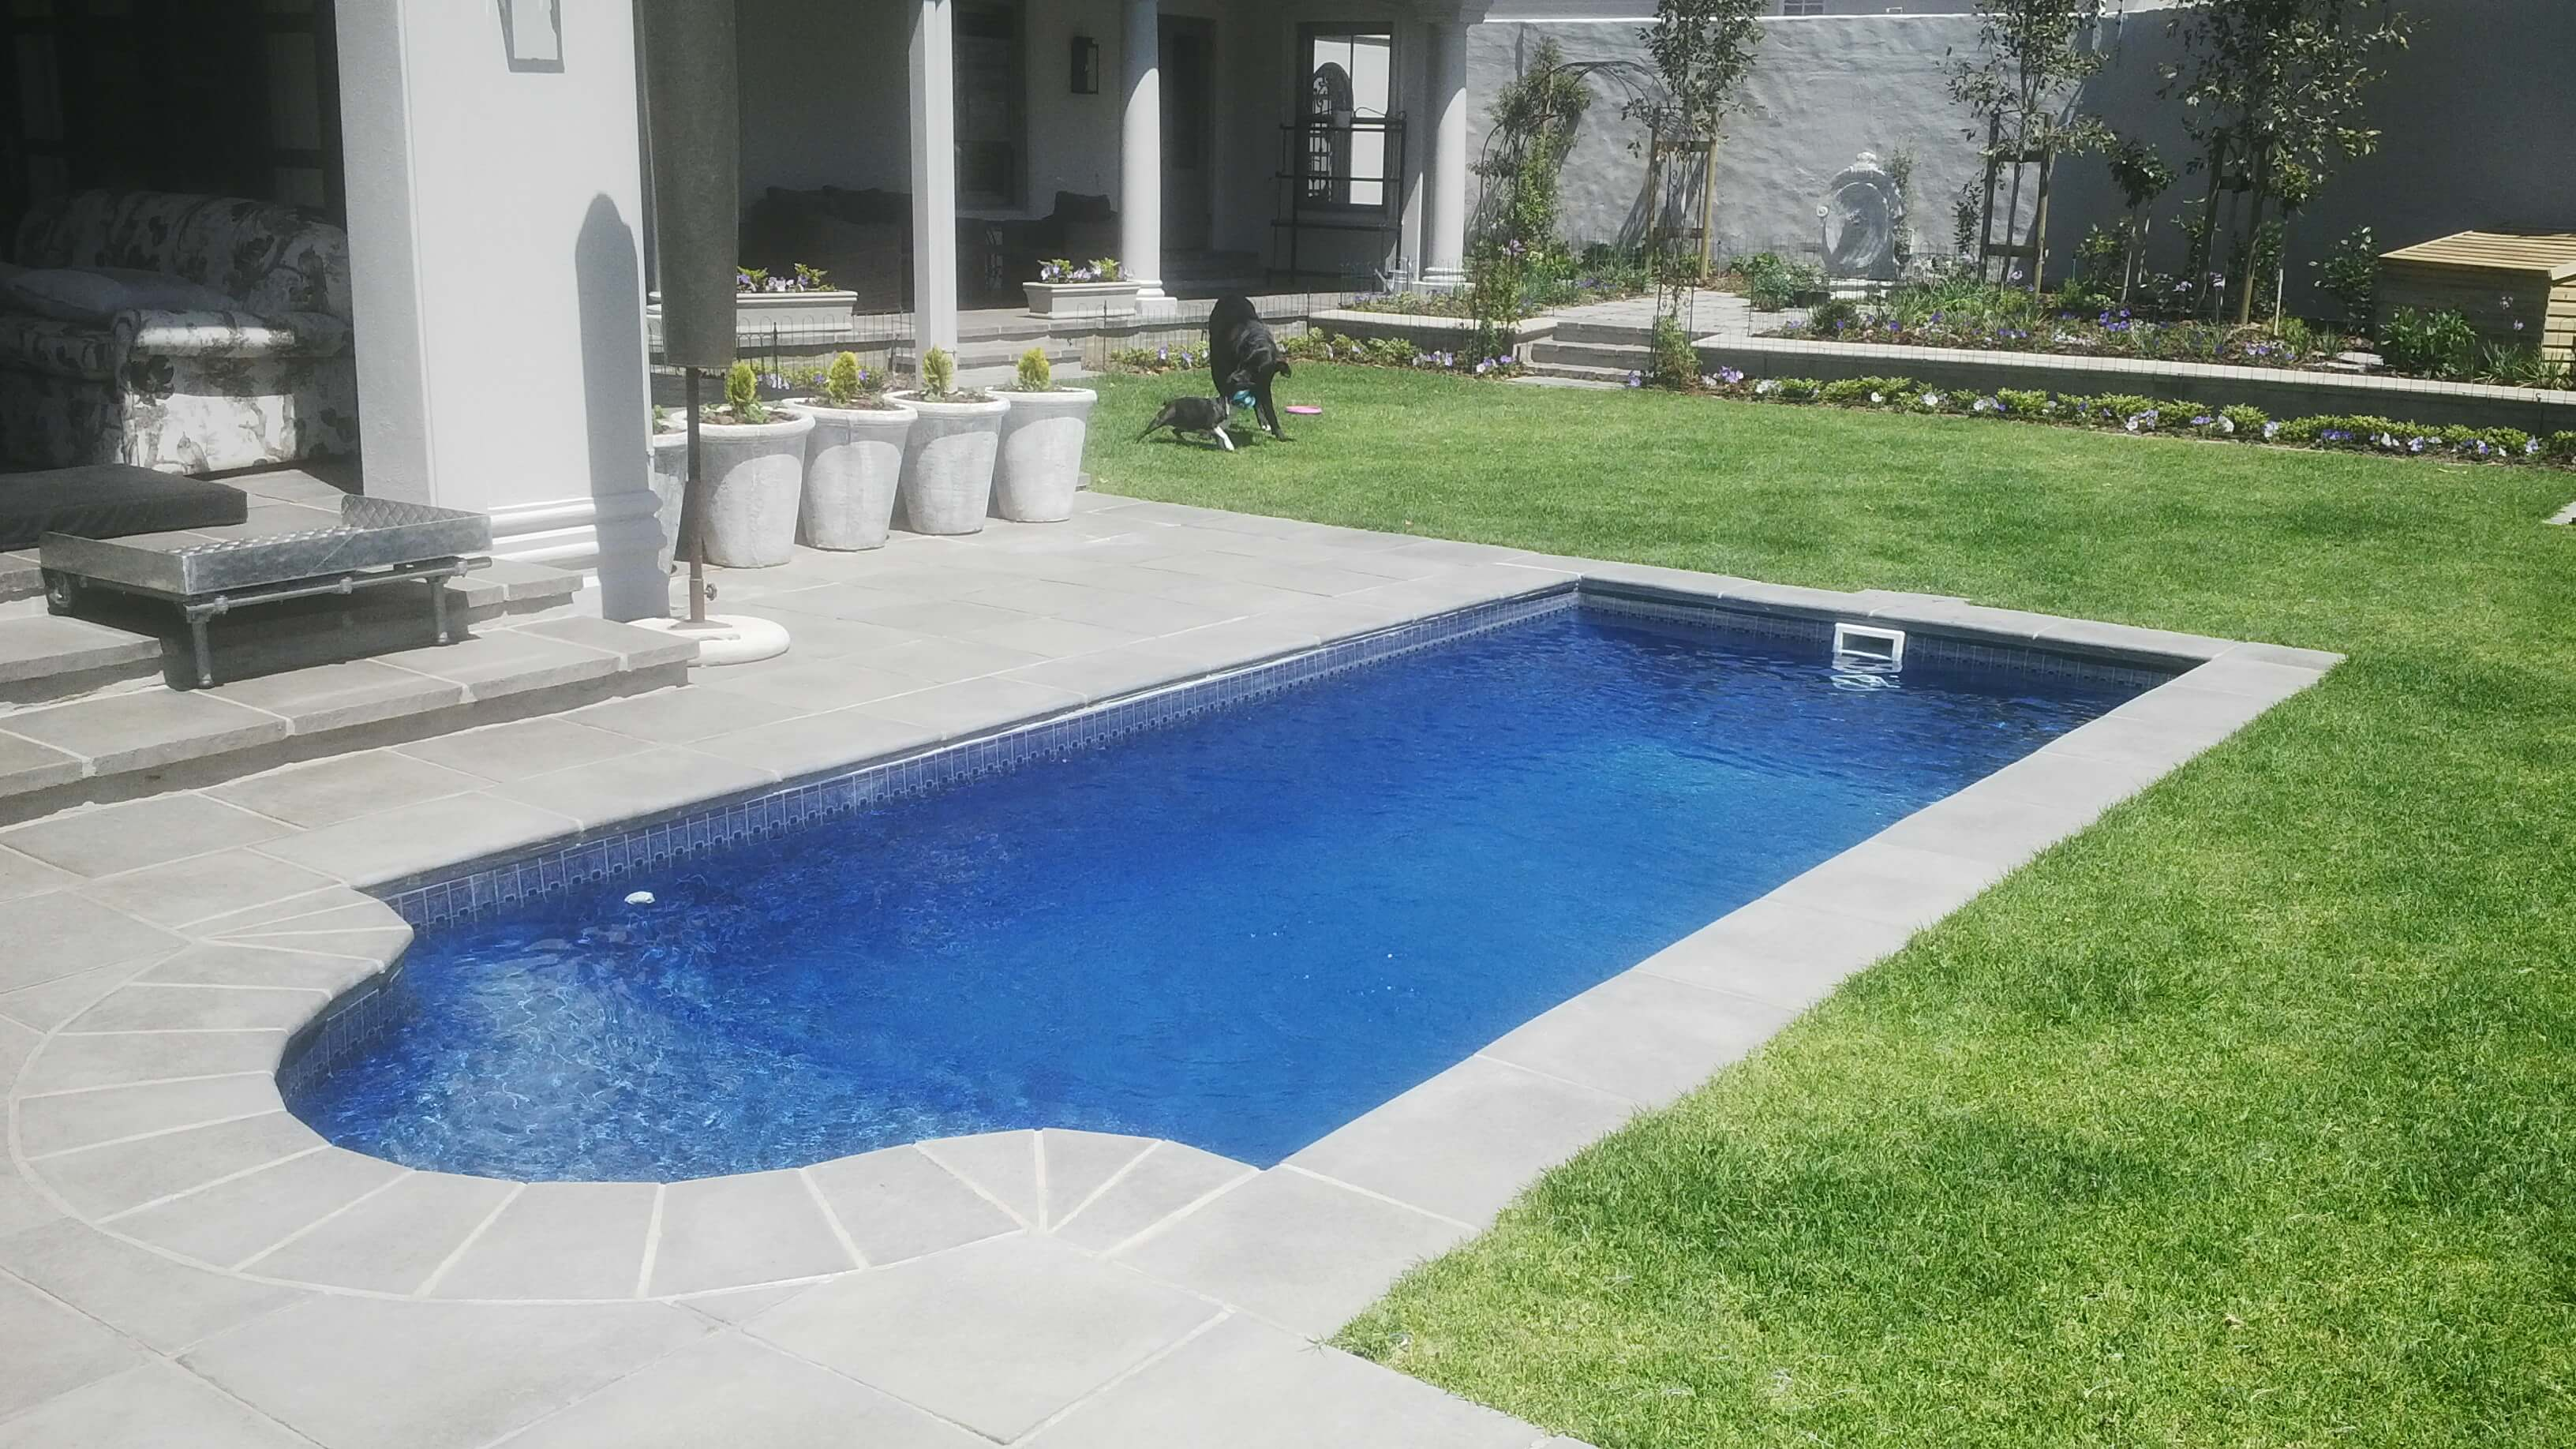 Install Fibreglass Pools | Pool Installation | Sundance Pools